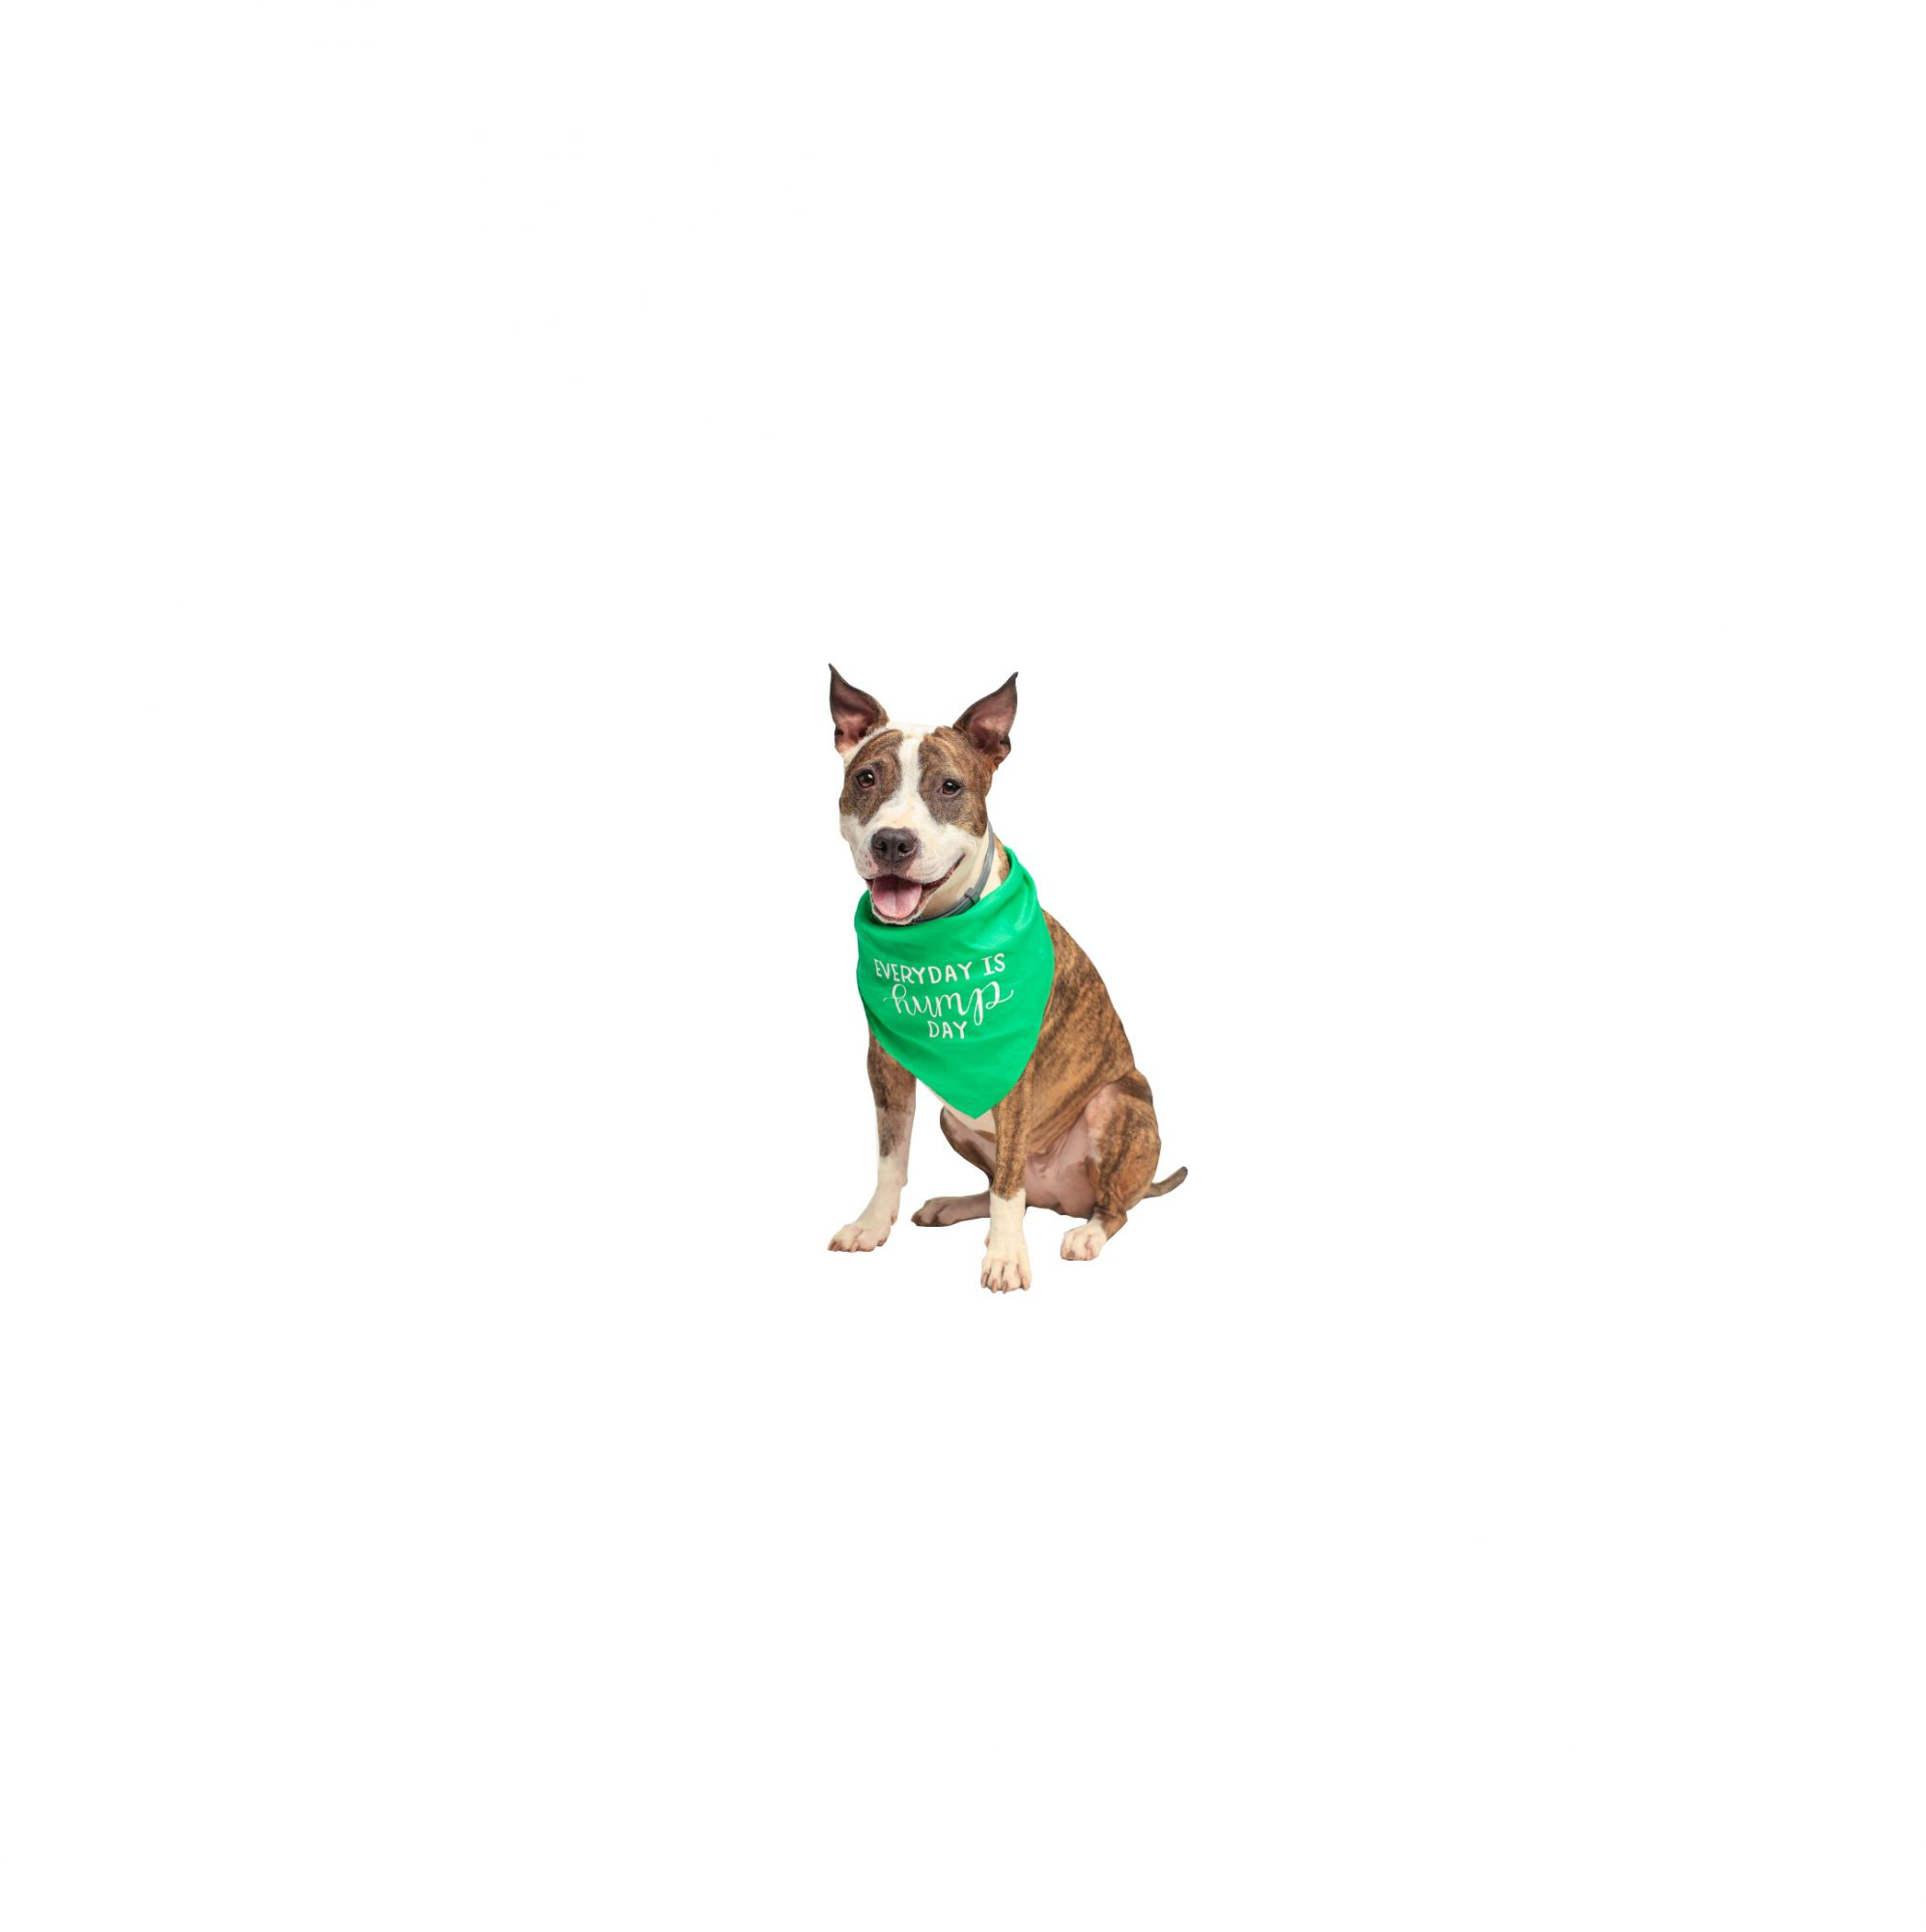 e40e6fd5e20d Fun Gifts for Dogs, Cats, and More Pets